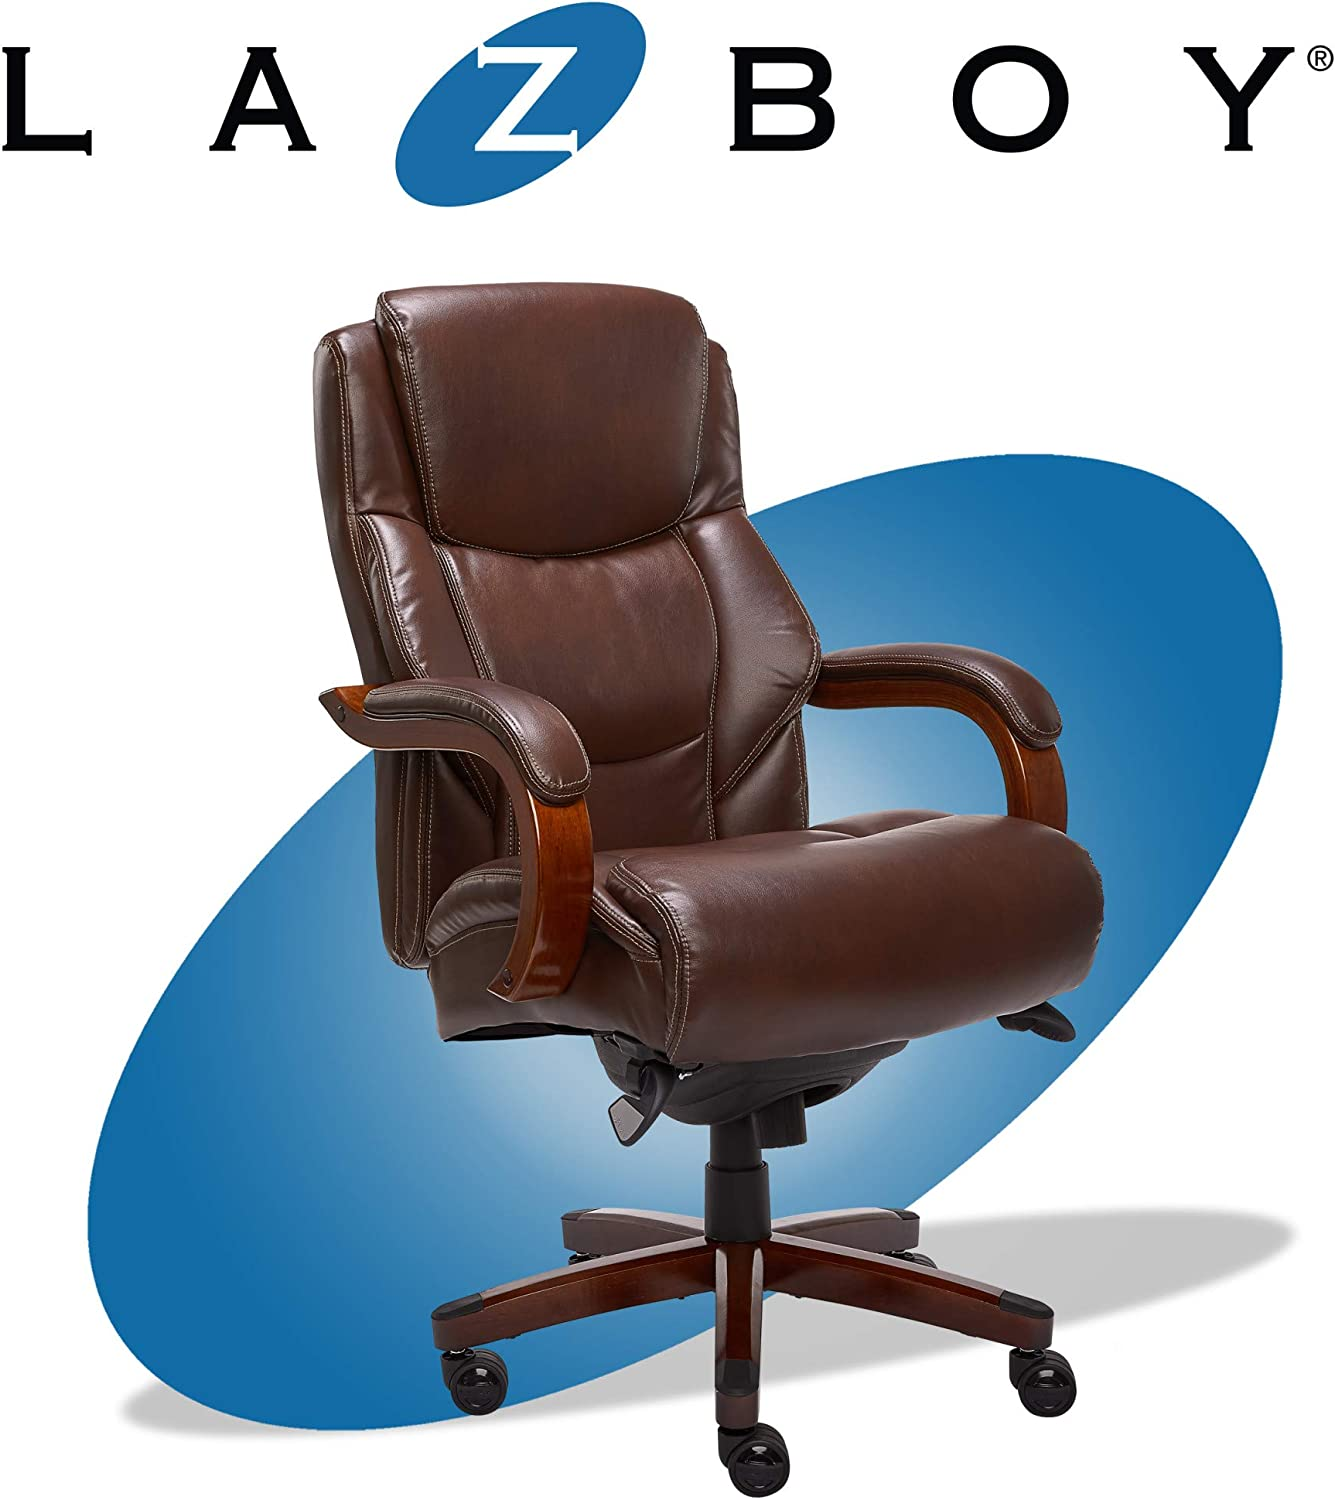 La Z Boy Delano Big & Tall Executive Office Chair | High Back Ergonomic Lumbar Support, Bonded Leather, Brown | 45833 model